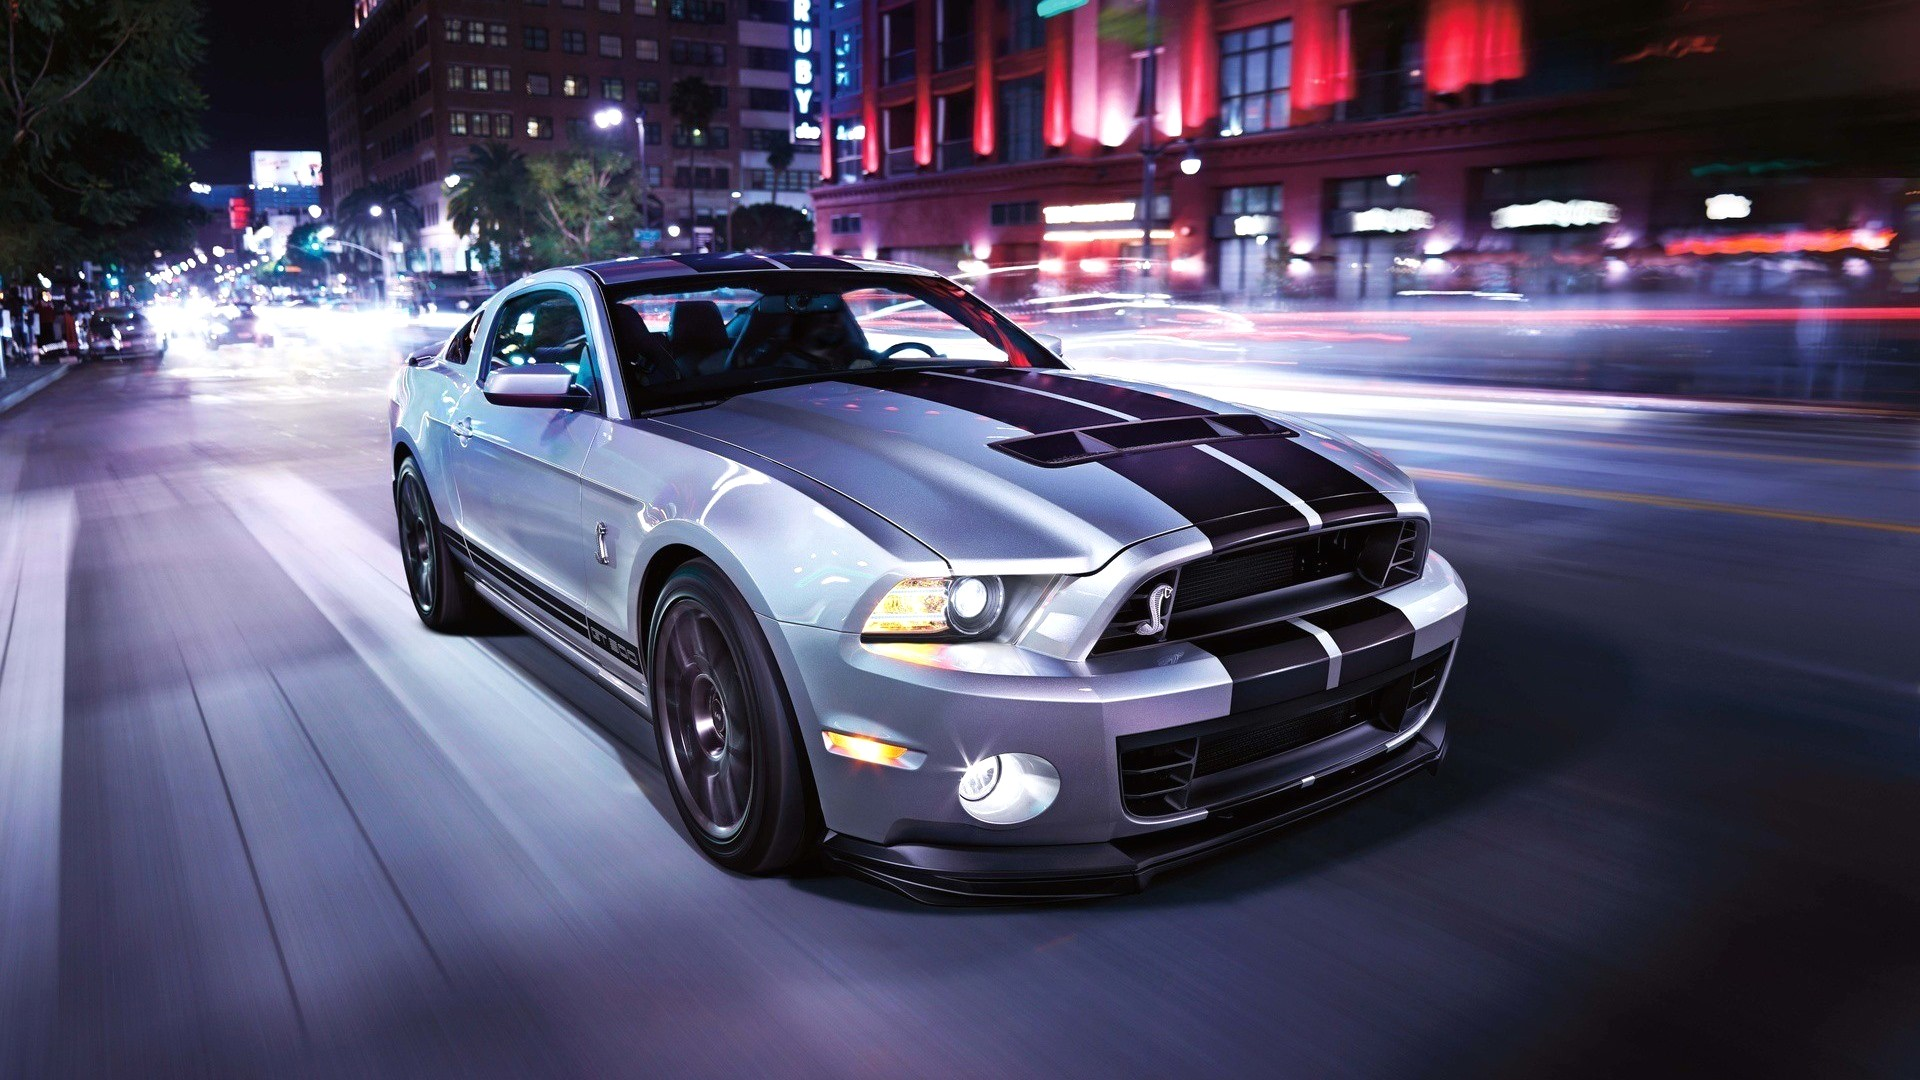 in the world 2015 new pictures best car in the world images wallpaper - Coolest Cars In The World 2015